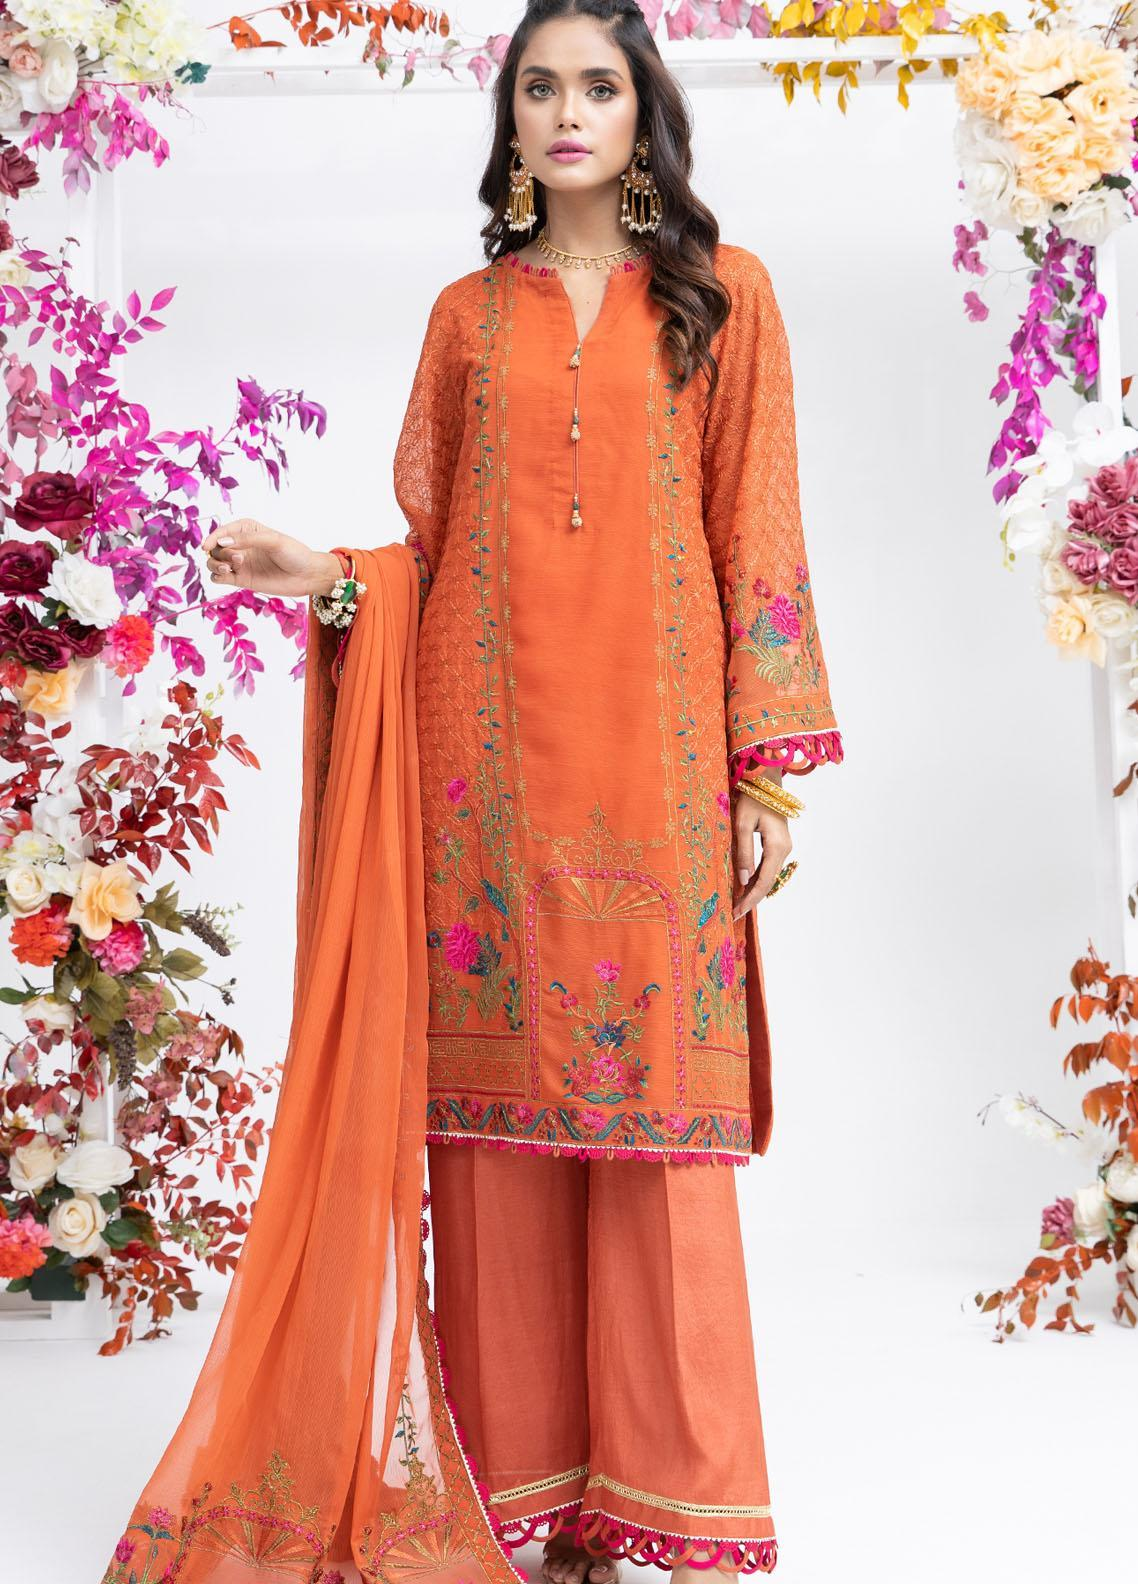 Parishey By Zaaviay Embroidered Chiffon Suits Unstitched 3 Piece KIRAN - Luxury Collection